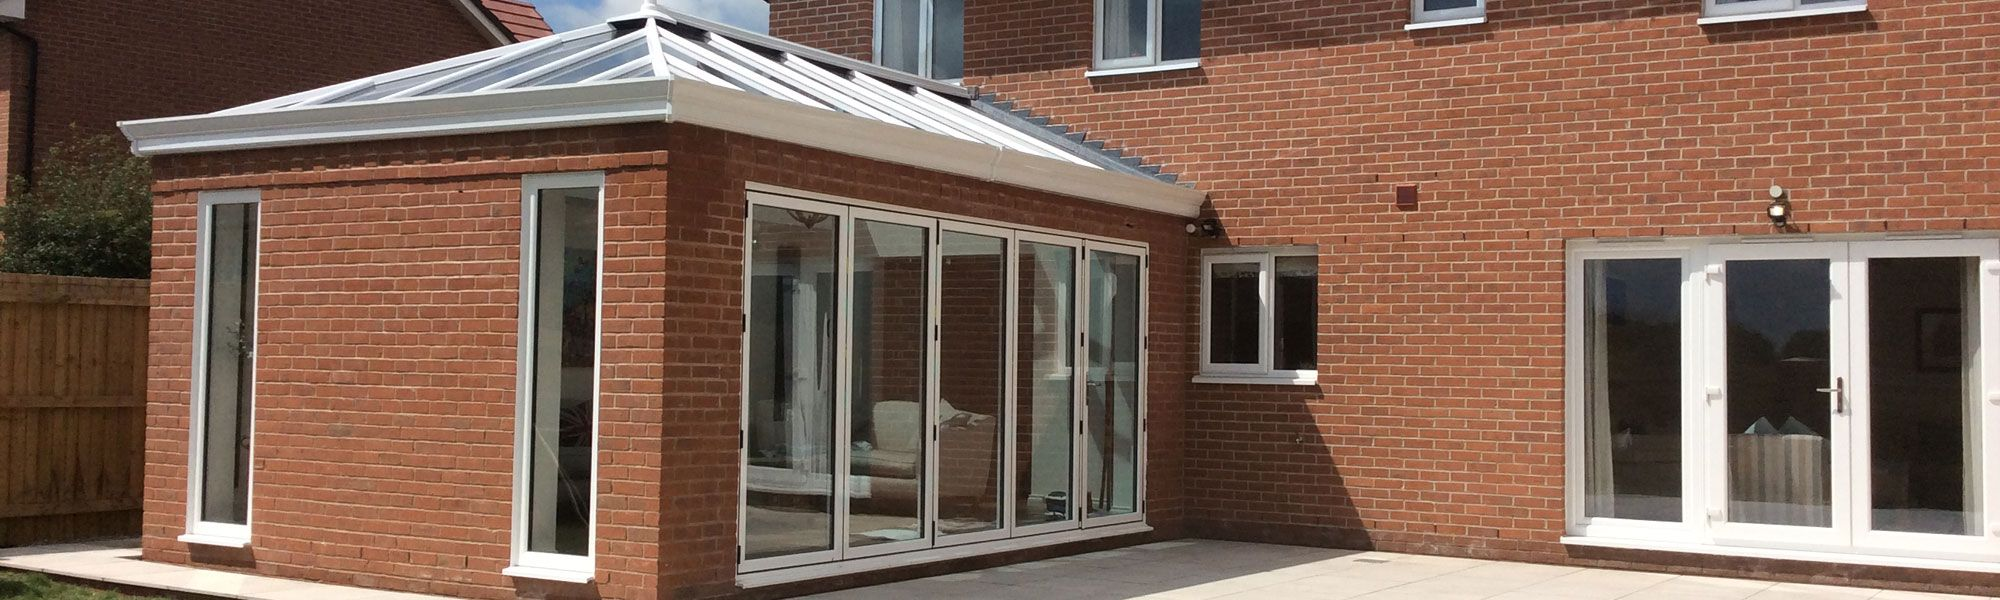 Modern conservatory fitted at house in Wrexham, North Wales